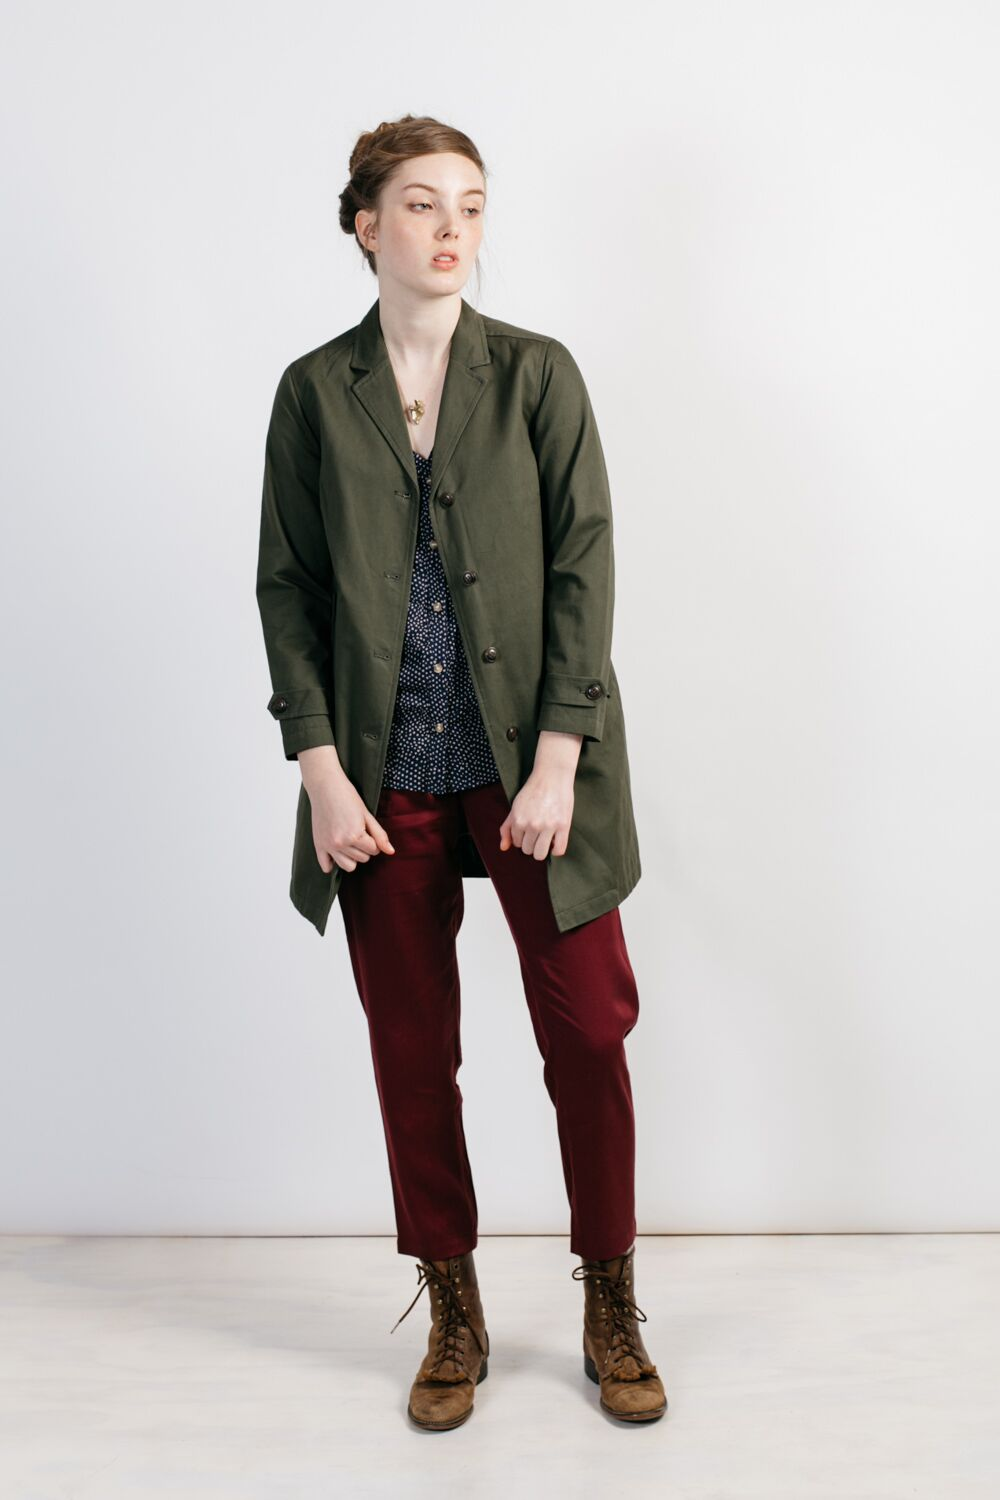 Ansdell Duster - Olive, Bridge & Burn - Gingerly Witty